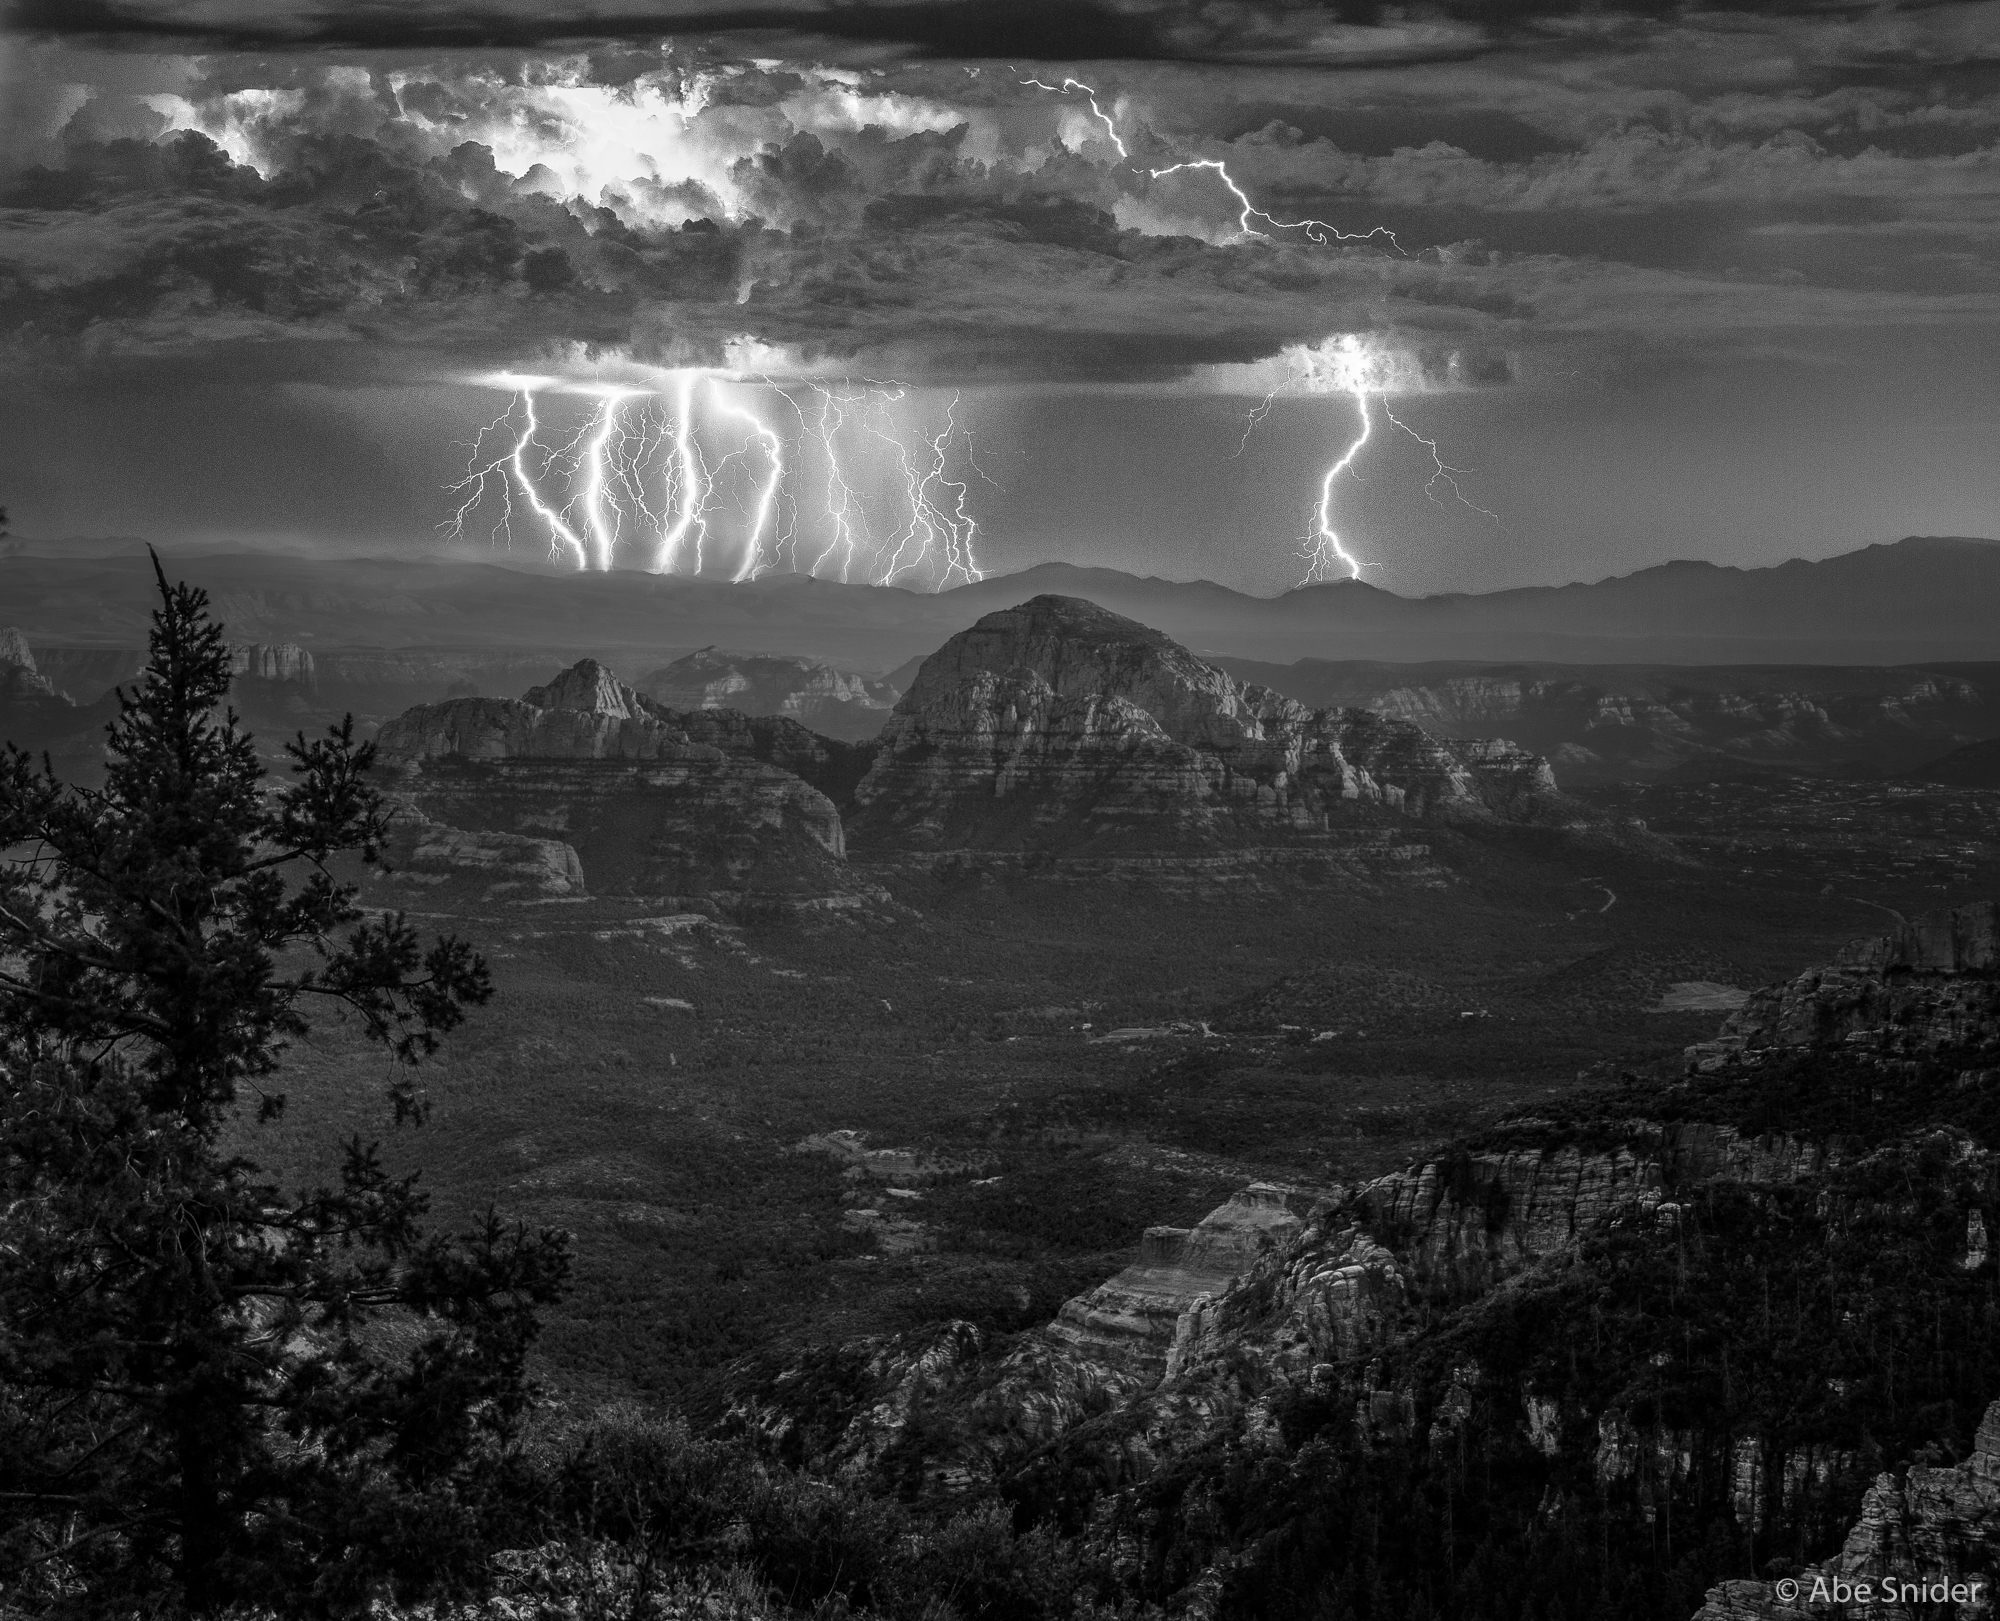 Summer Storm in Black and White